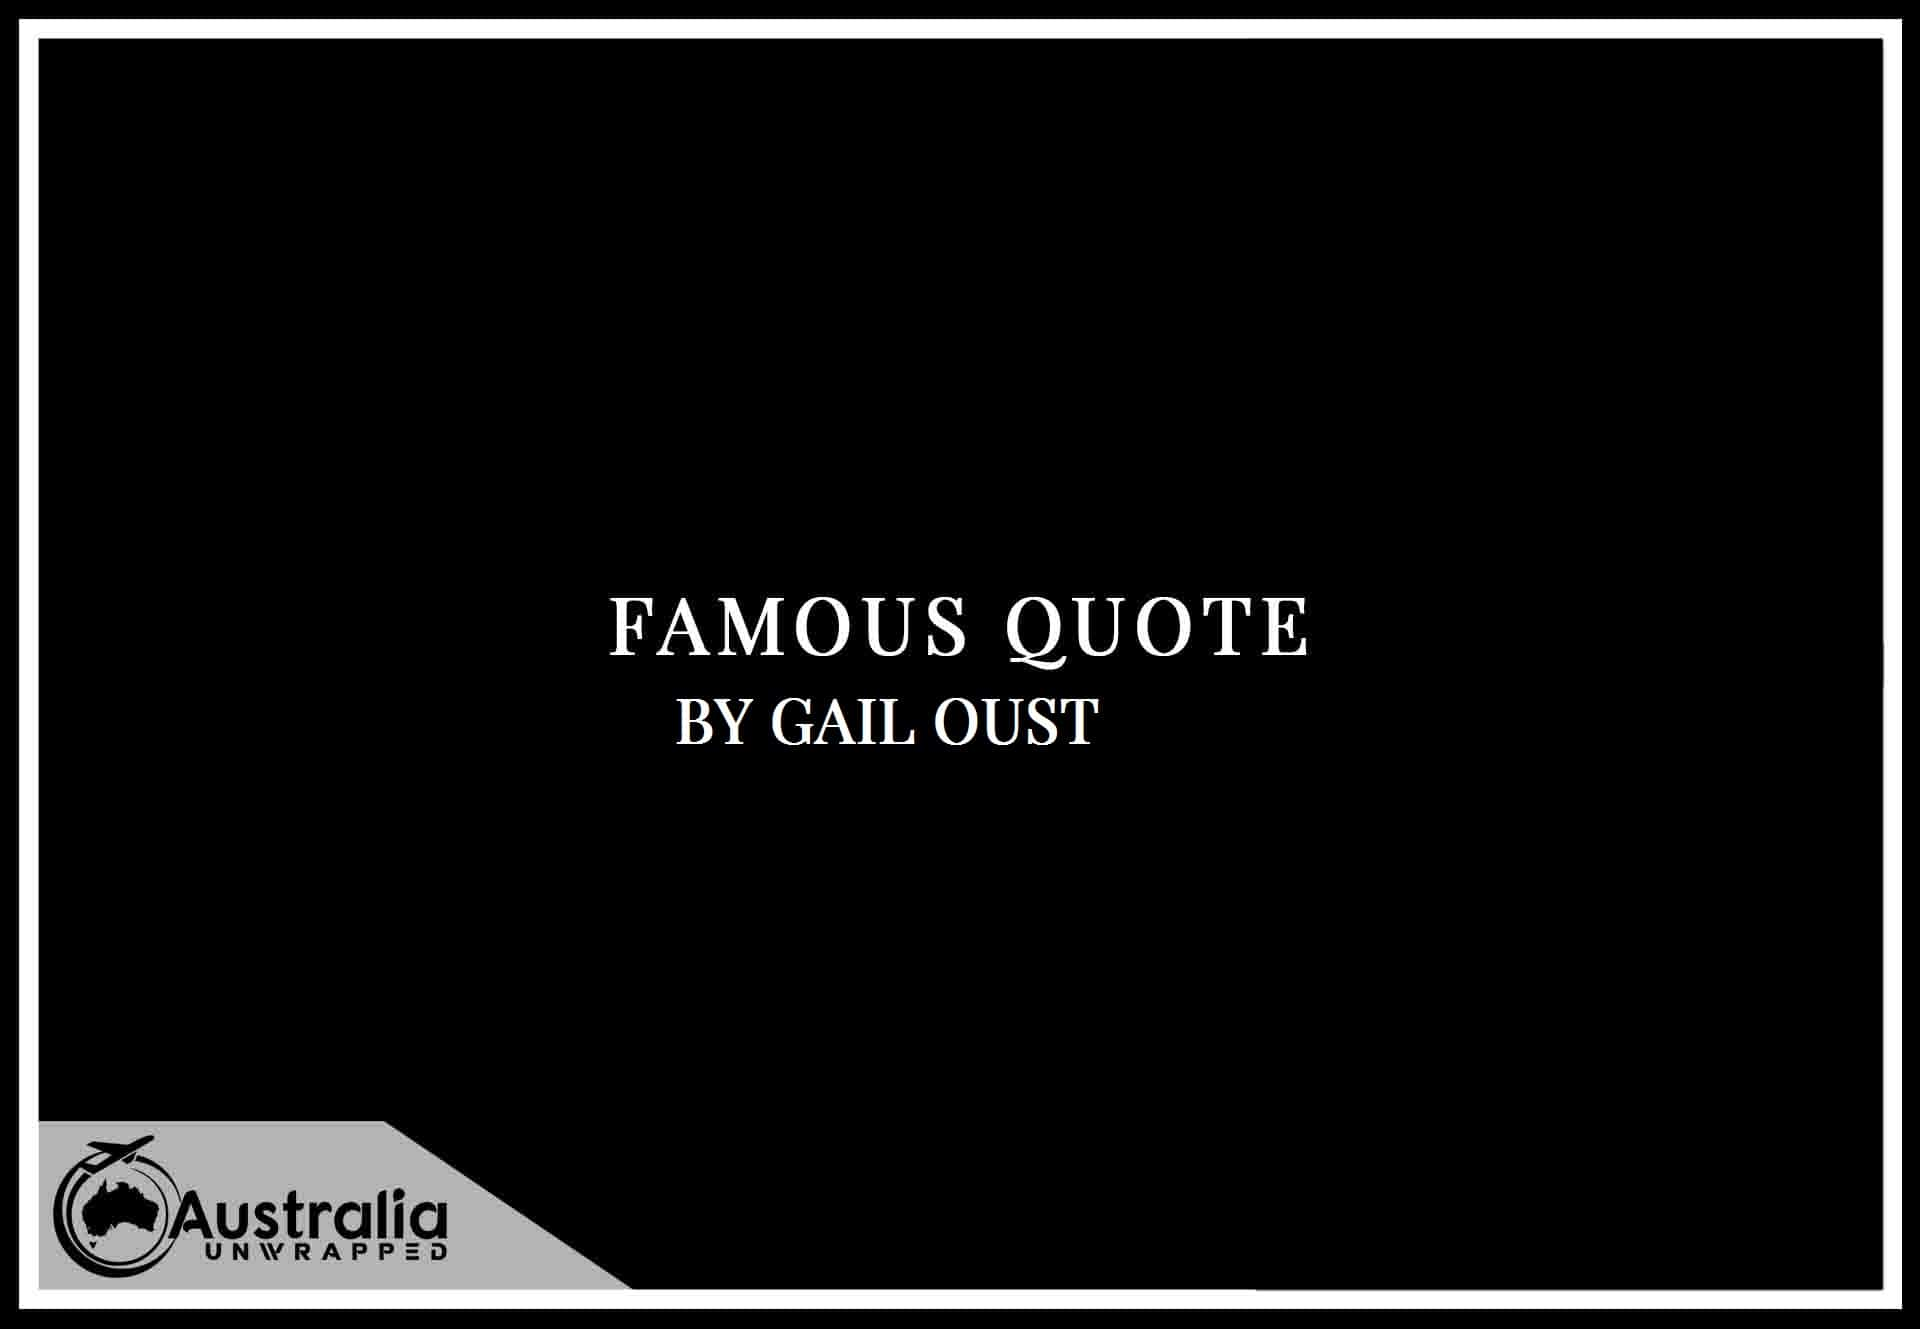 Gail Oust's Top 1 Popular and Famous Quotes